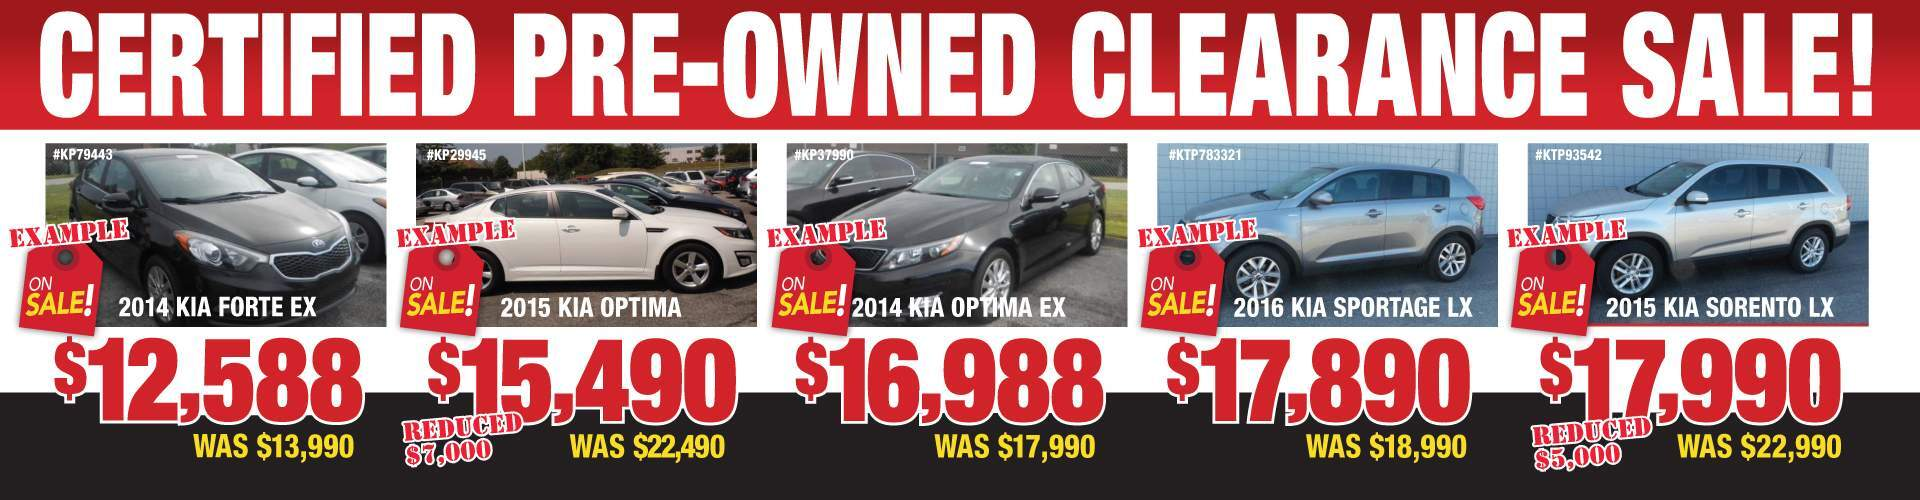 Kia Certified Vehicle! Going Fast!